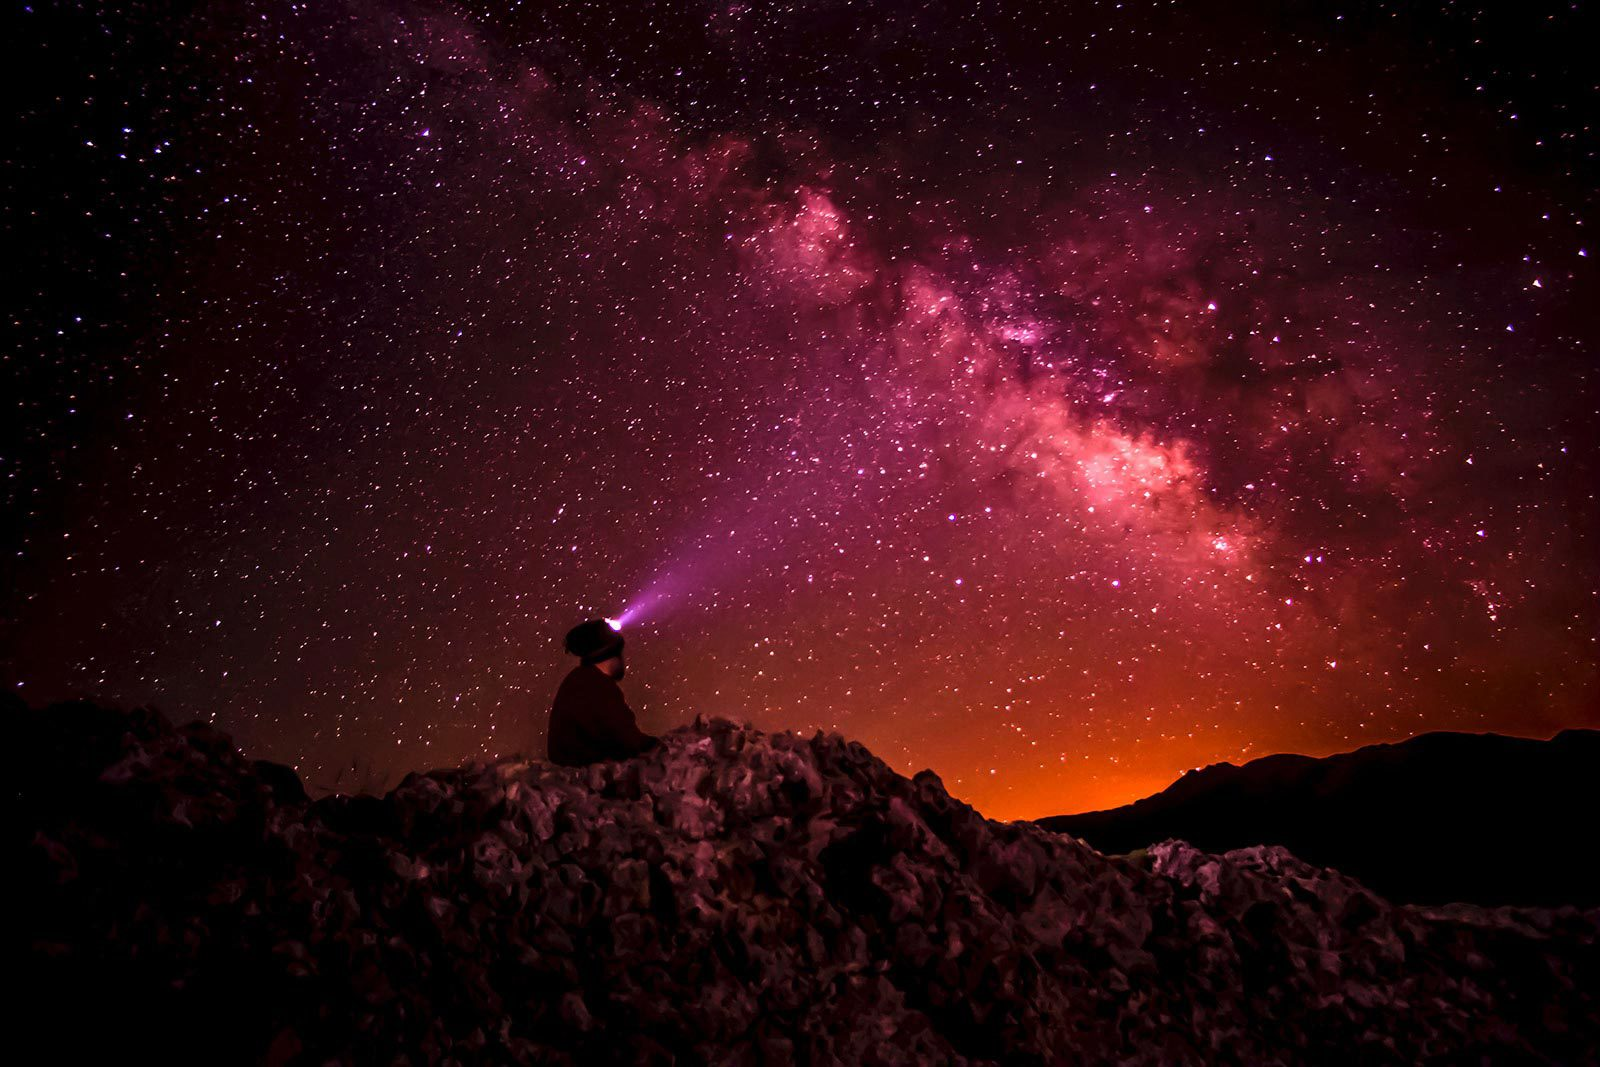 Person with headlamp sitting on mountain looking at red and pink sky with stars.